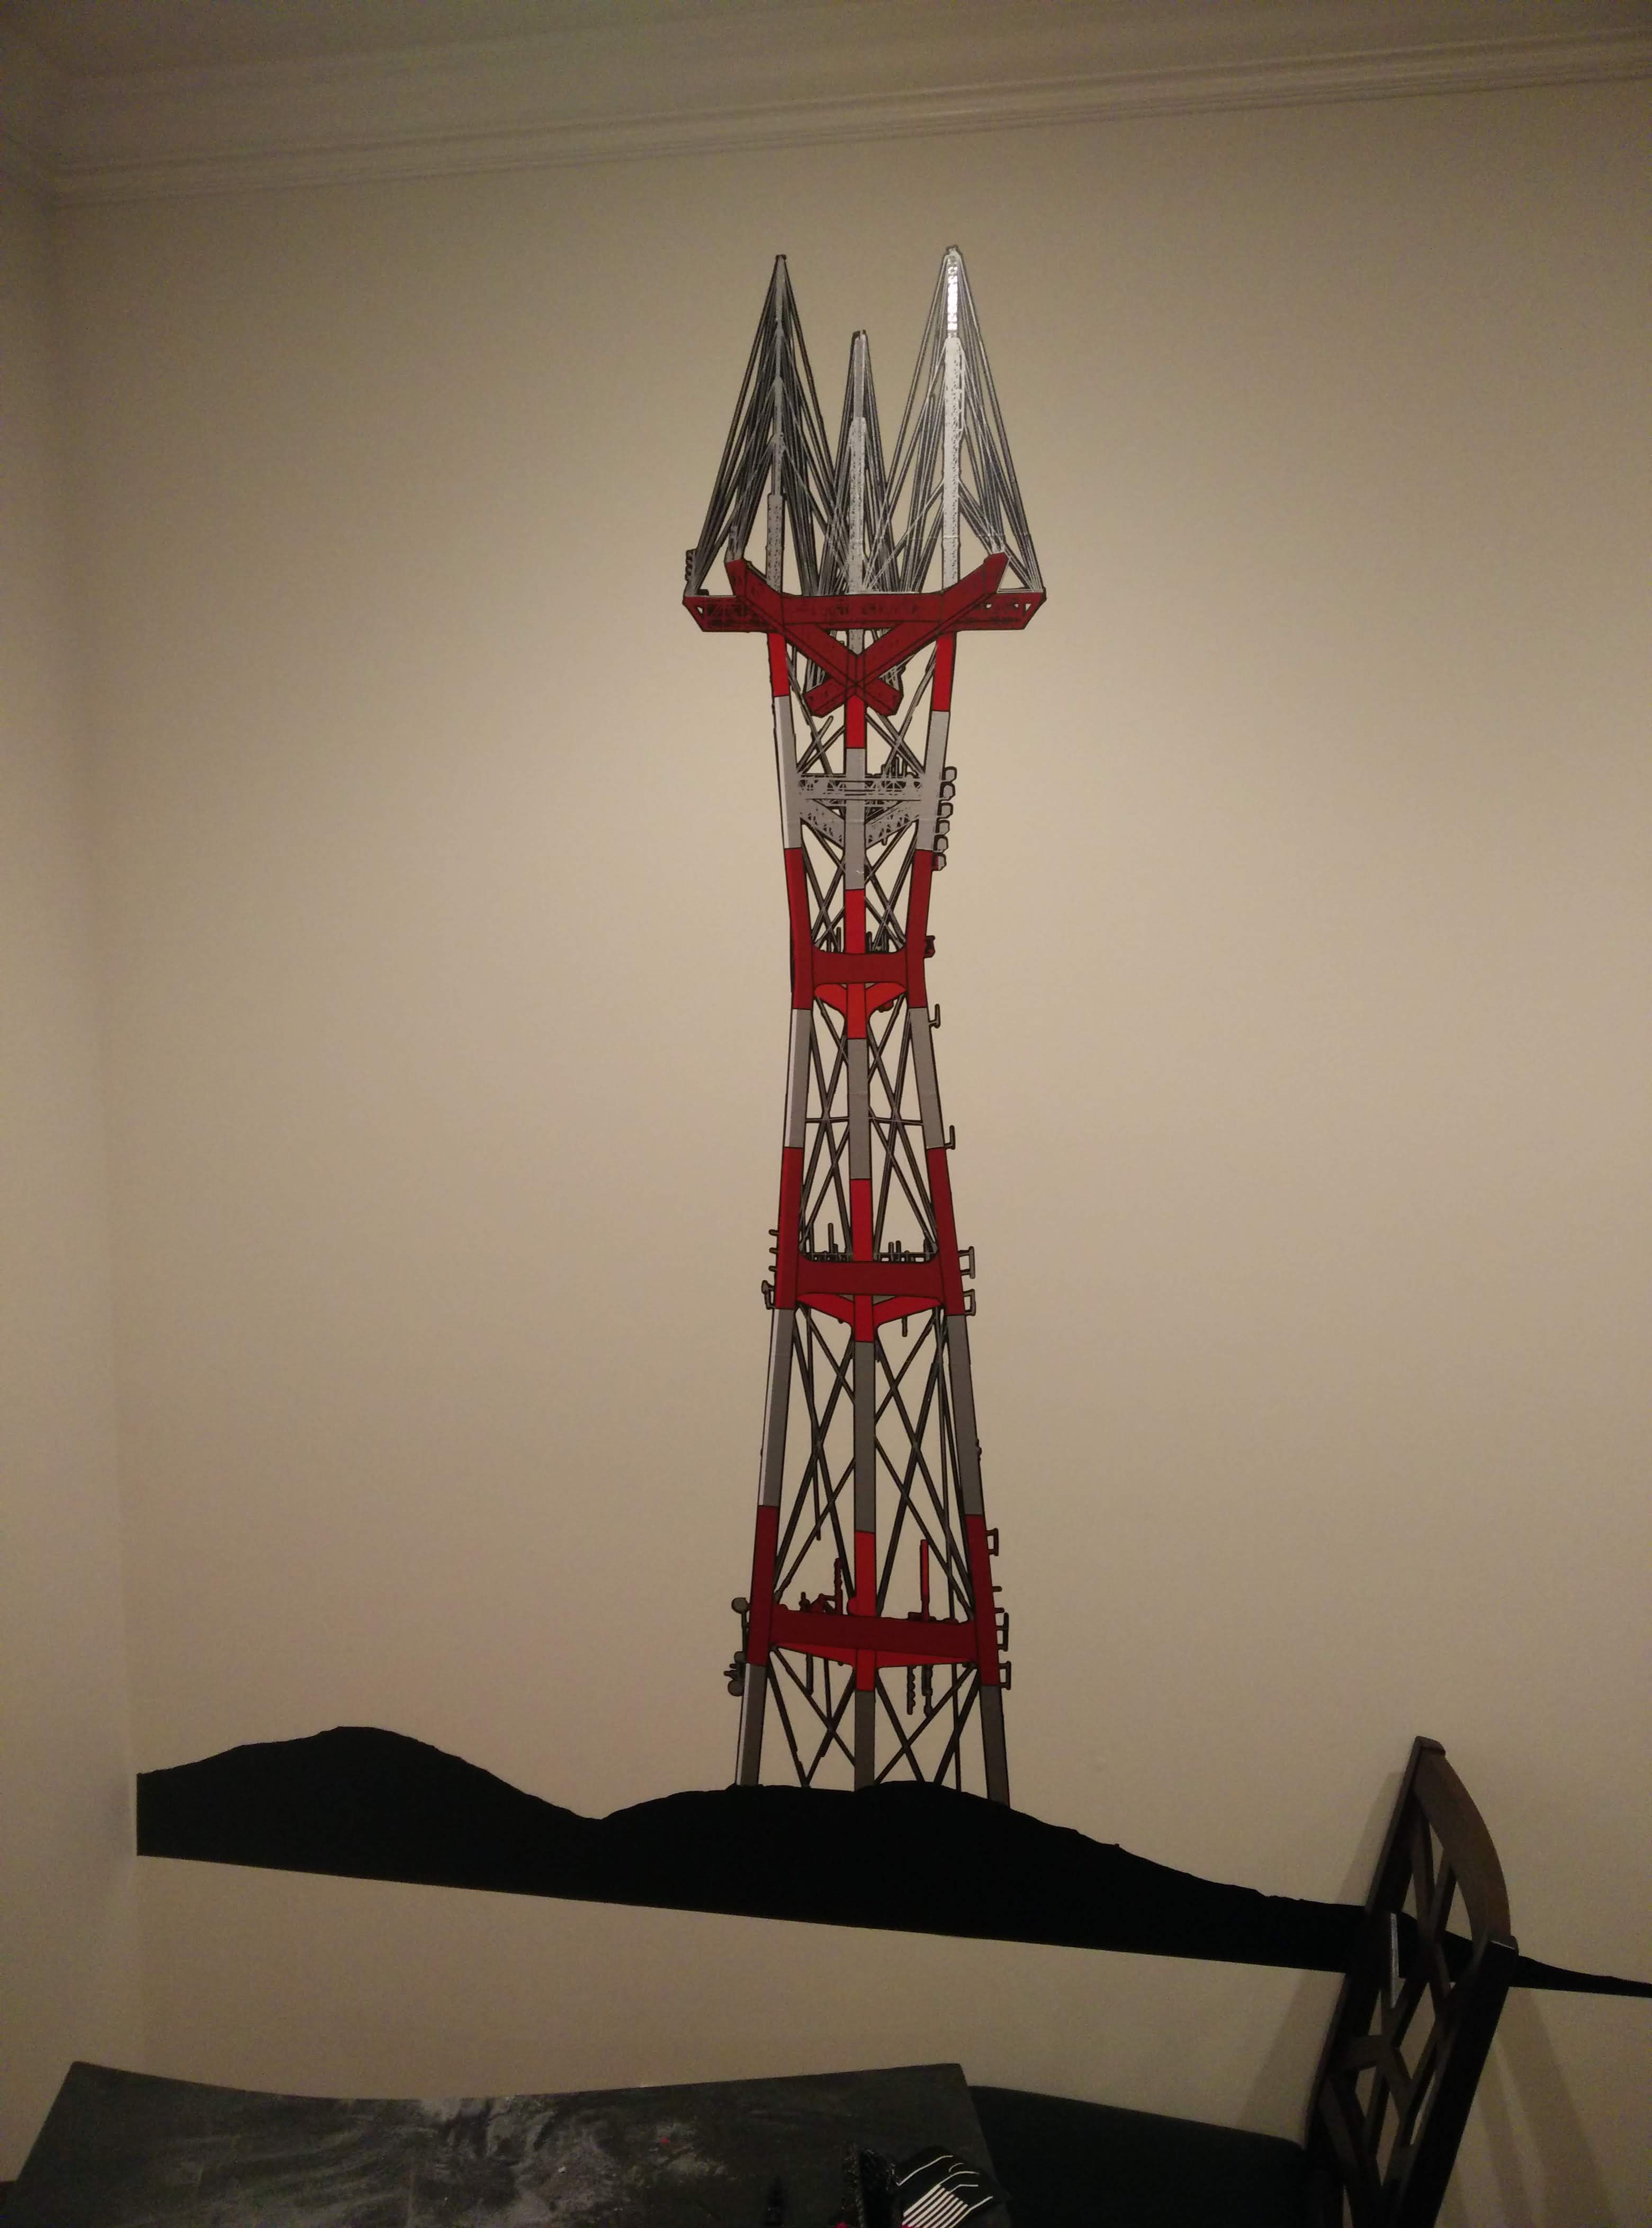 Image of Sutro Tower on the Wall